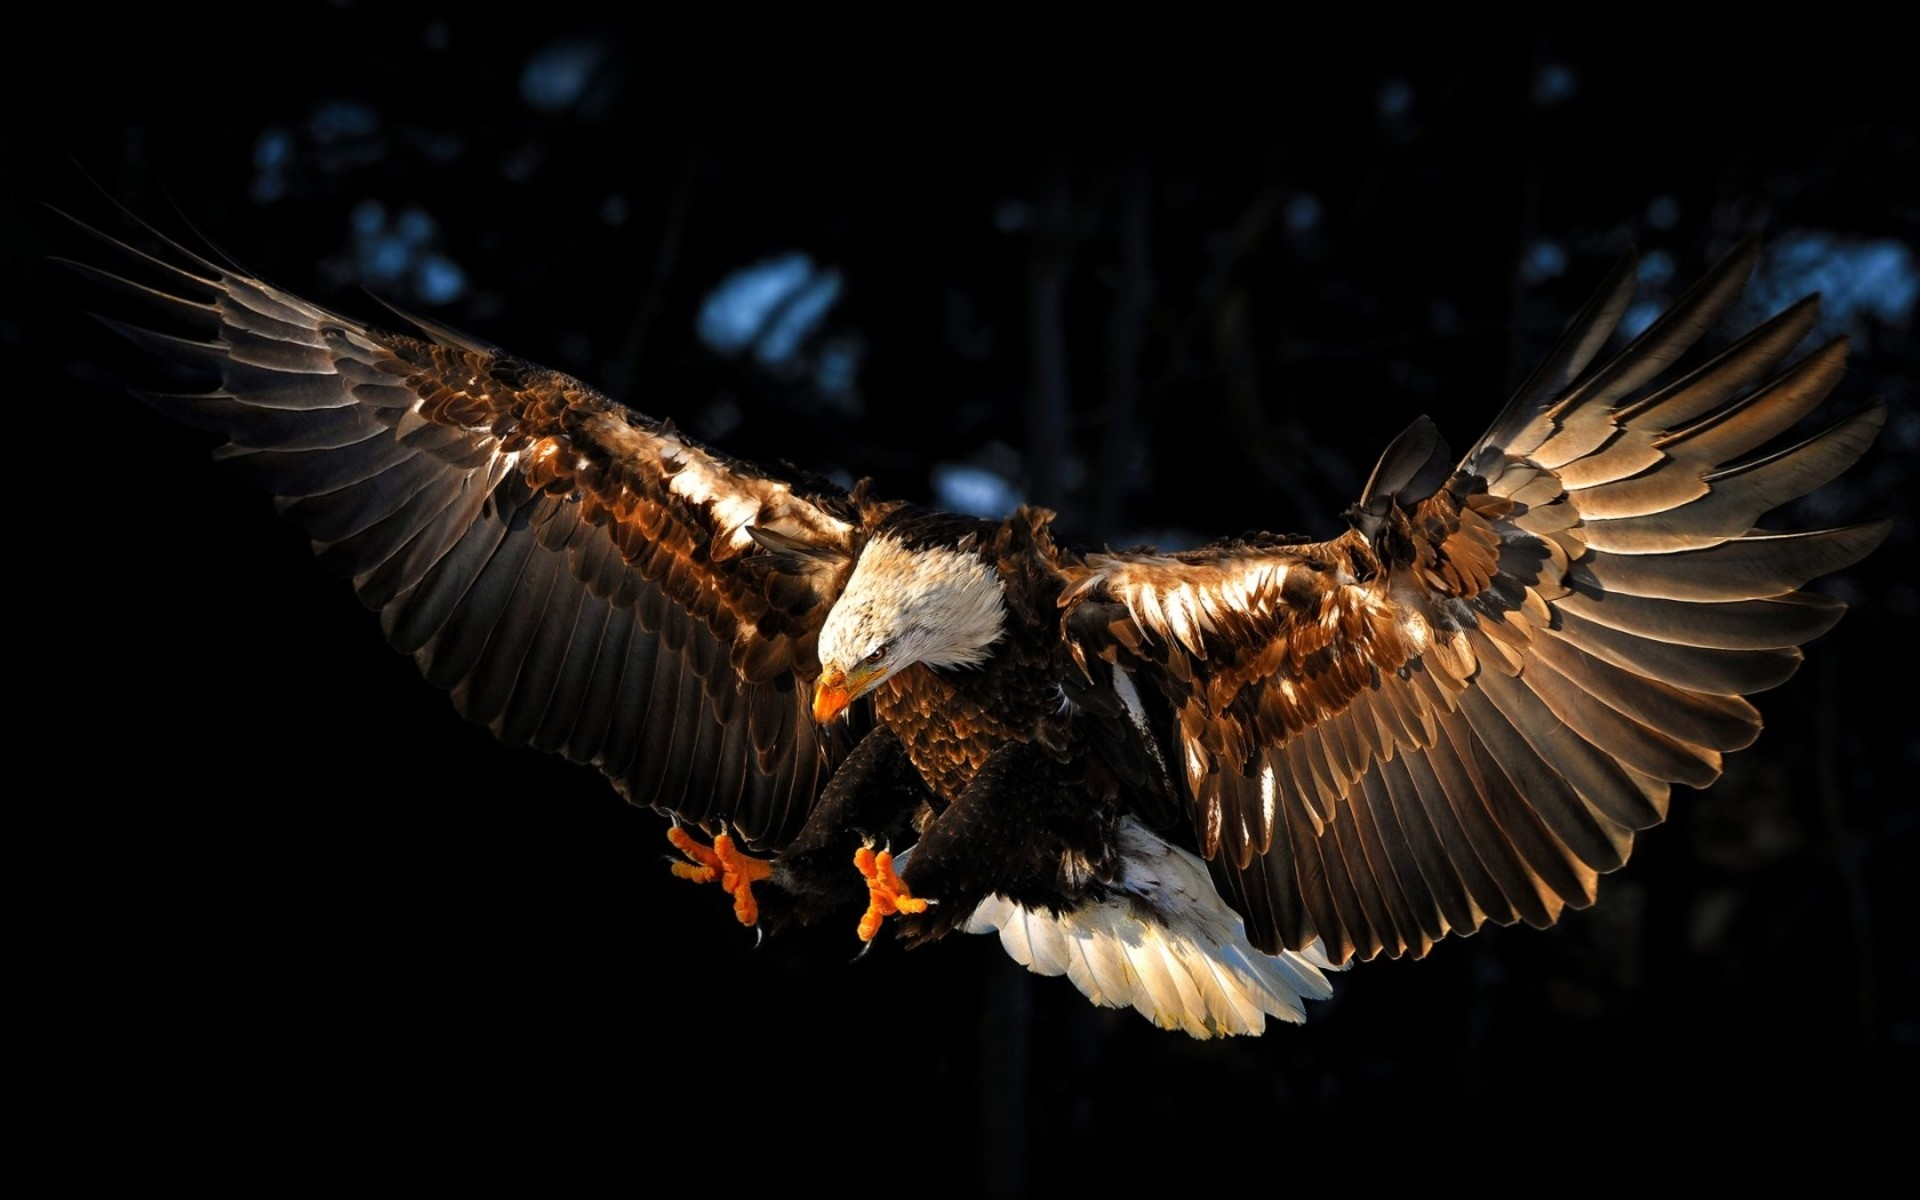 1920x1200 Top 25+ best Eagle wallpaper ideas on Pinterest | Eagles, American eagle  flights and Bald eagle